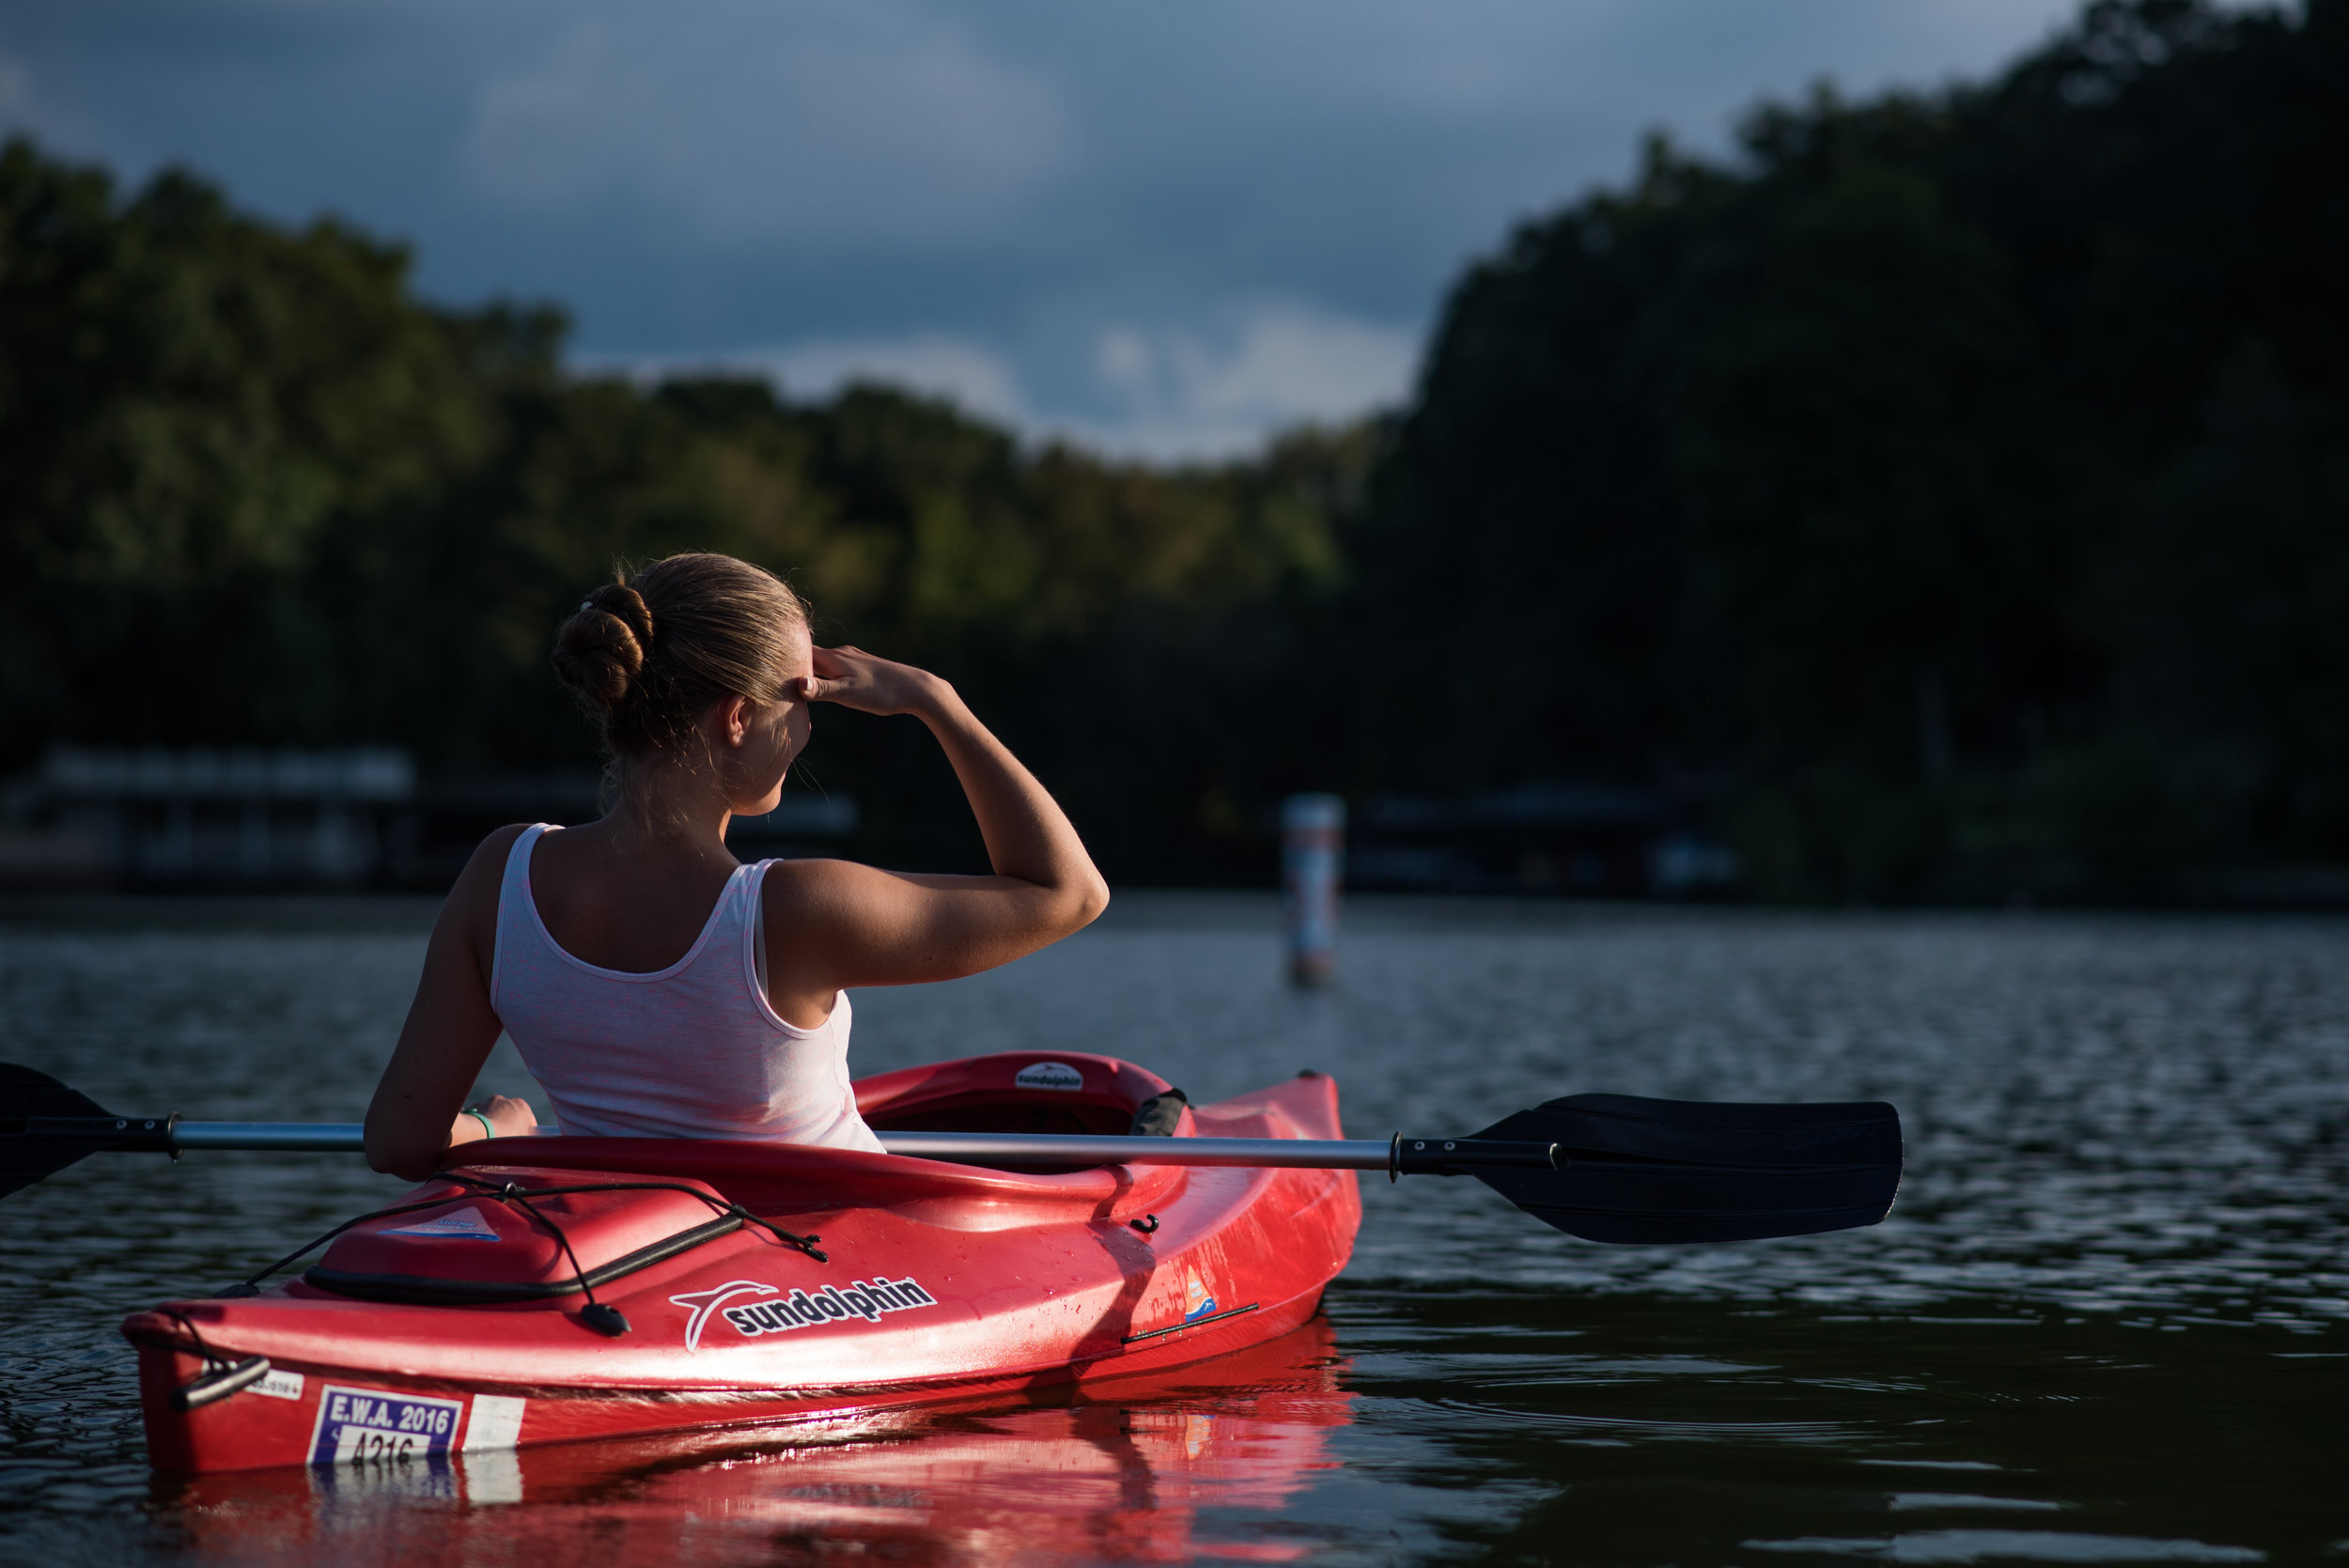 RICHMOND OUTDOORS - Whether it's kayaking in the James River's Class 4 rapids, catching white perch and catfish from the Mayo Bridge or biking to the heart of Downtown Richmond, it's easy to see why Outside Magazine named Richmond the best river town ever for the outdoors.